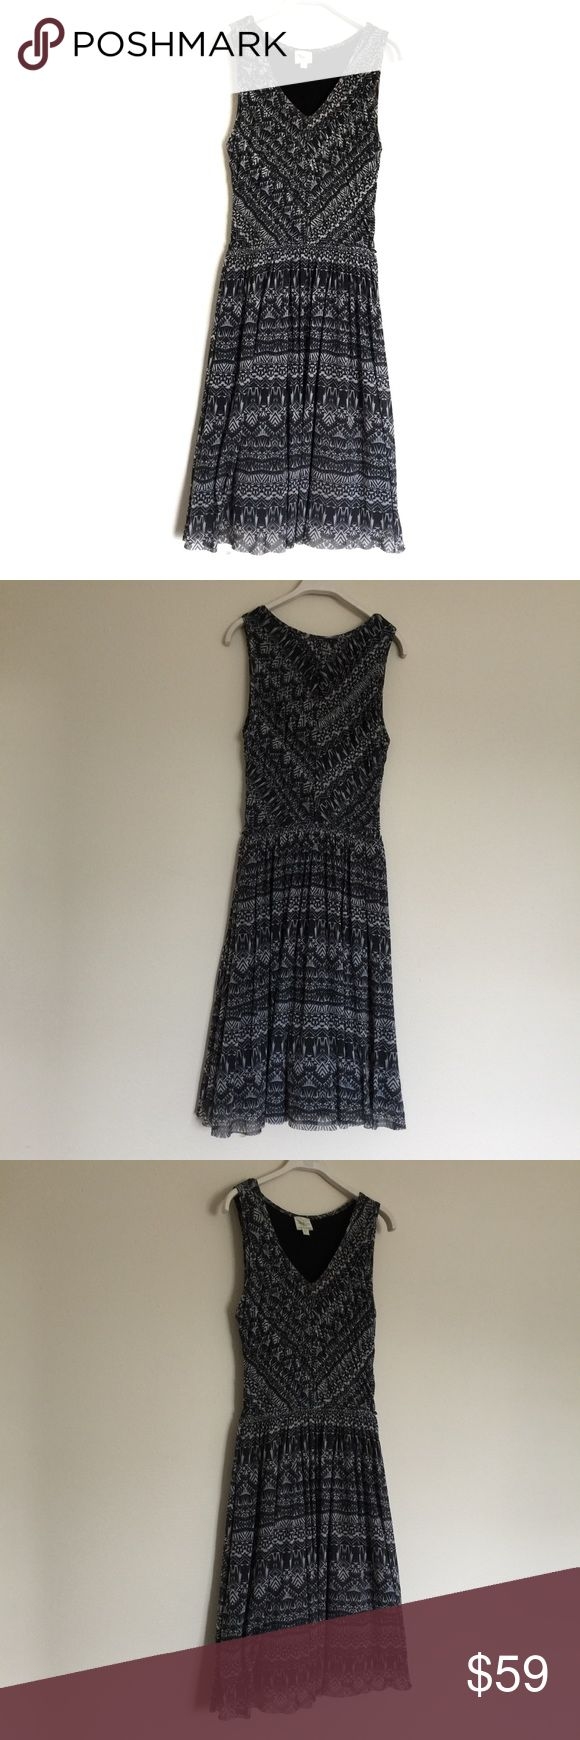 """Weston Wear """"Vera"""" pleated grey pattern dress L Beautiful fit flare dress with pleated skirt detail. Elastic waistband, tulle lined skirt. Ruch bodice and V neck. Pit to pit 18"""", waist 13"""", length 42"""". 100% nylon. Anthropologie Dresses"""